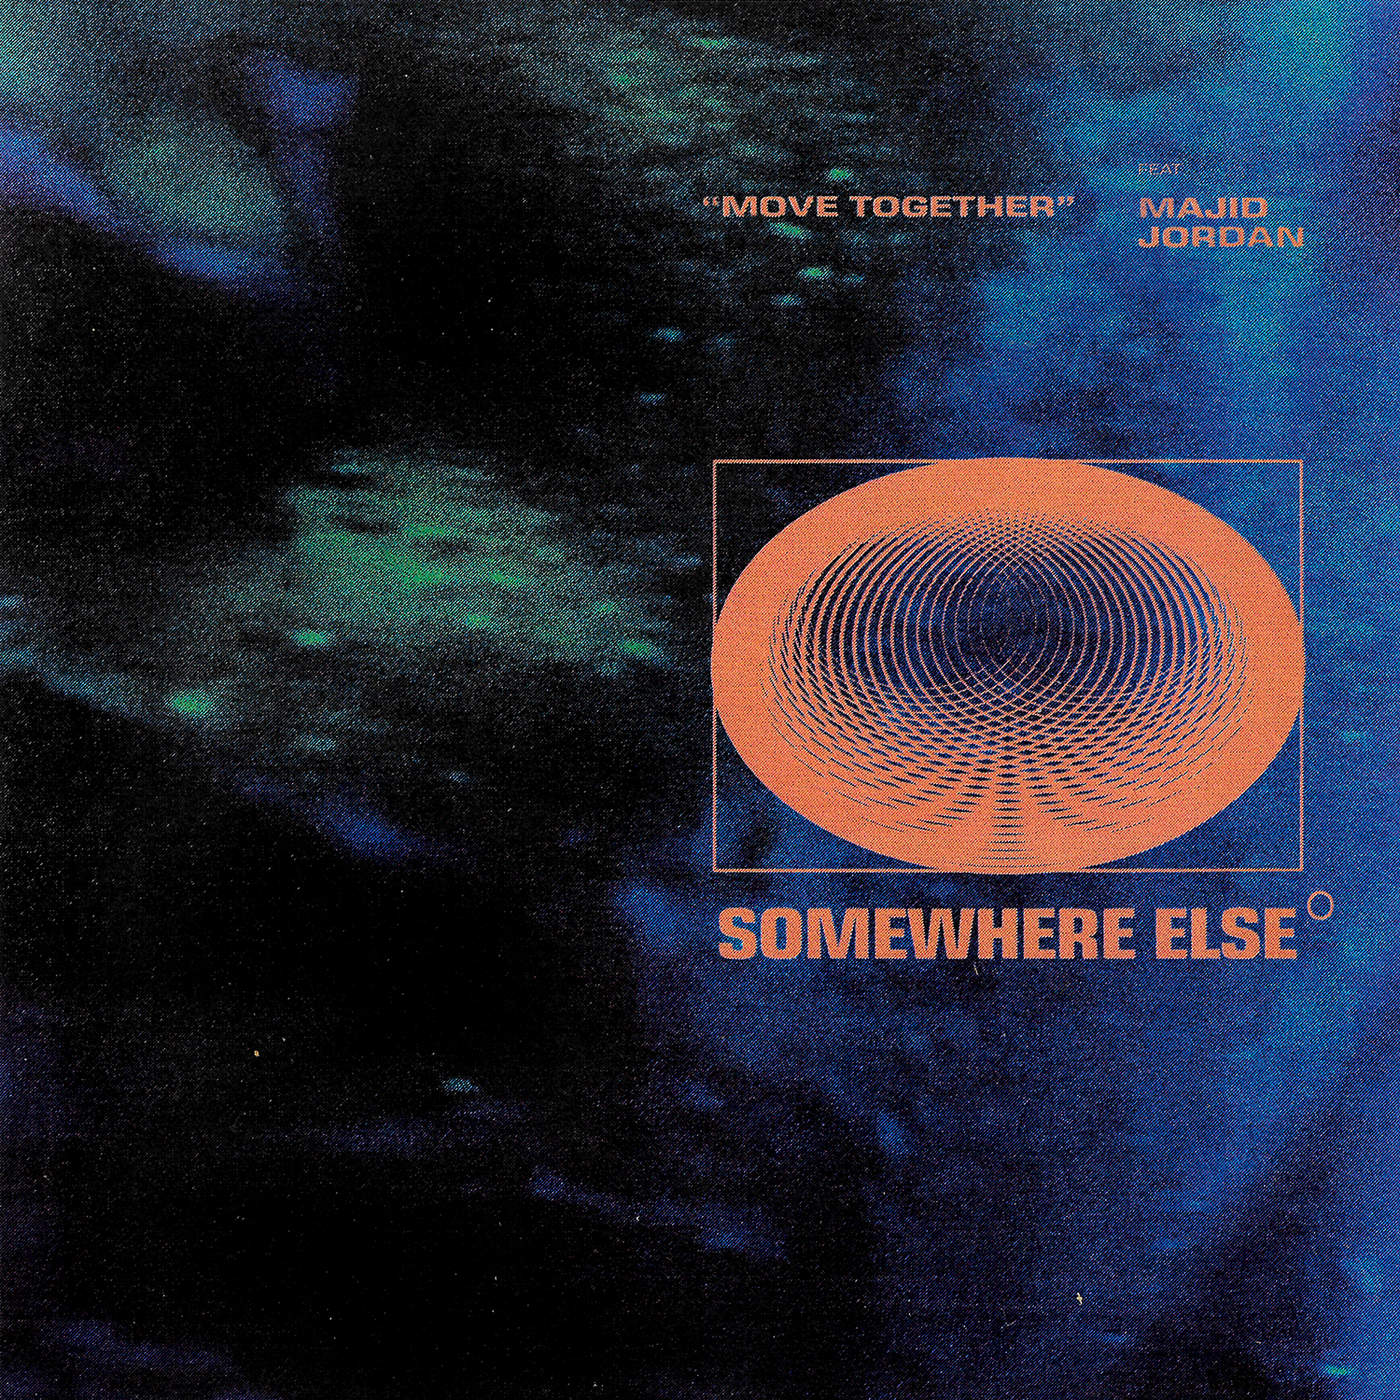 Somewhere Else - Move Together (feat. Majid Jordan) - Single Cover